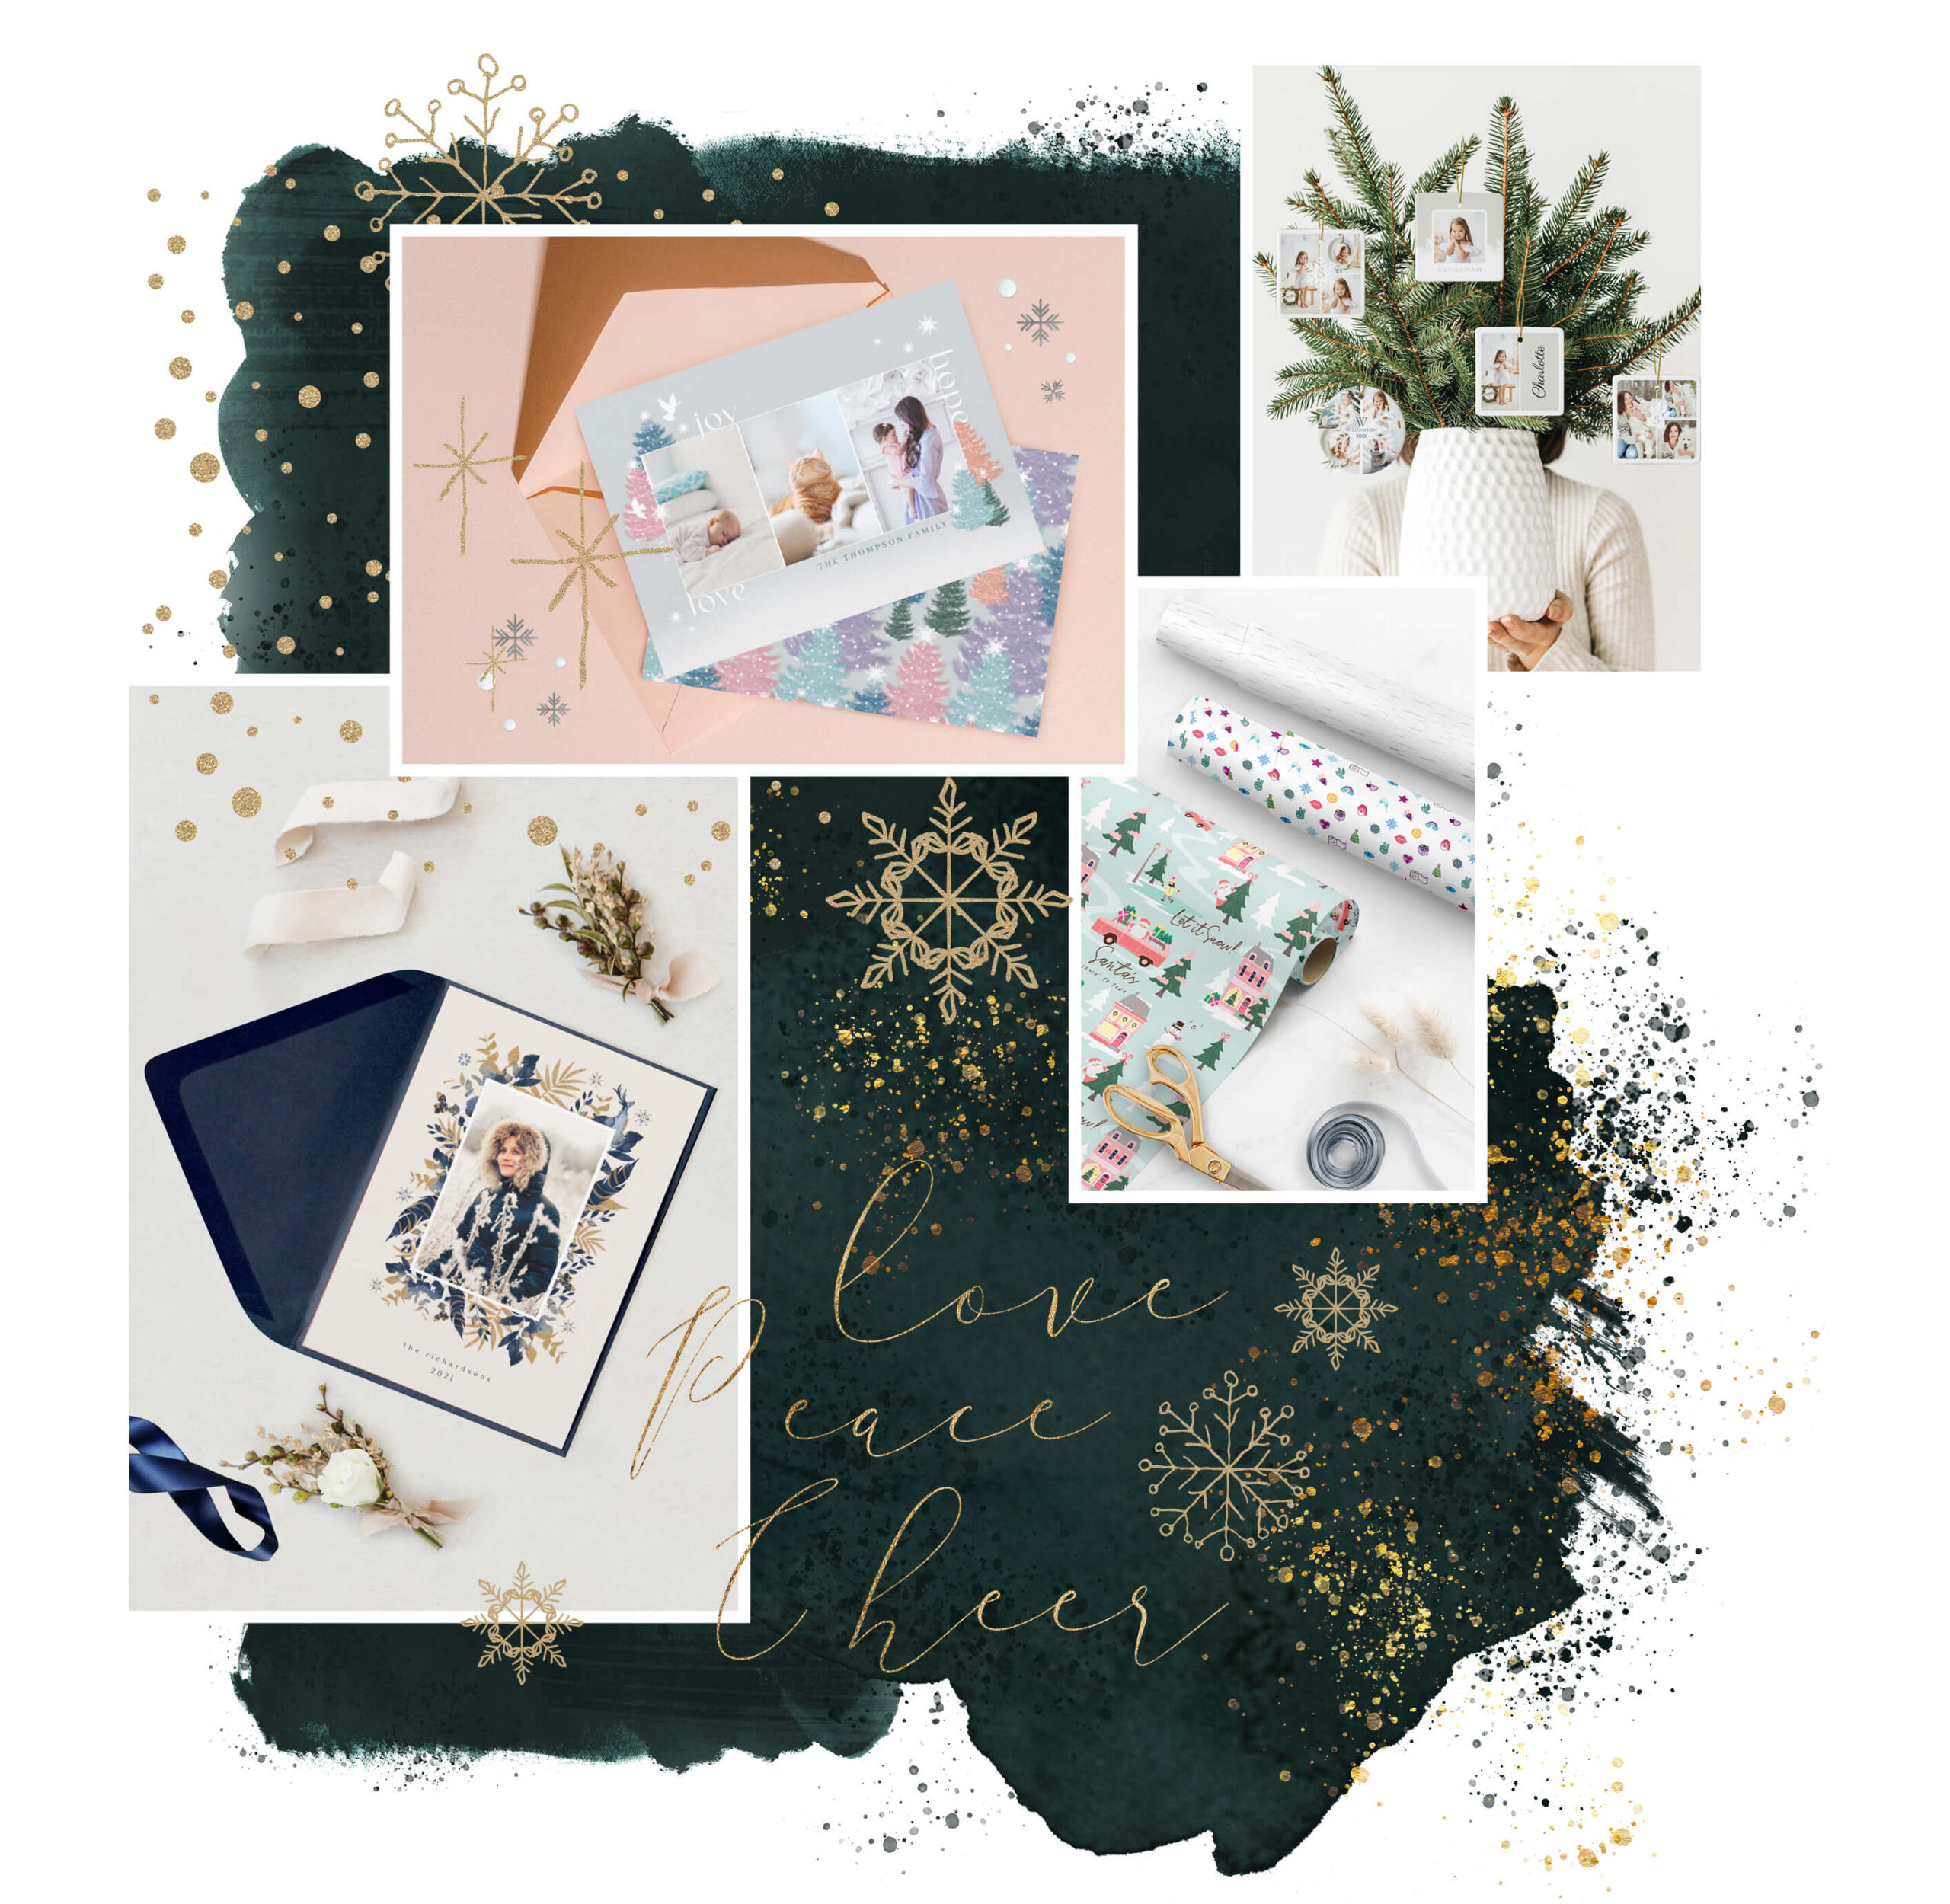 Festive Holiday & Christmas Greeting cards, Paper, Ornaments and More By Moodthology Papery